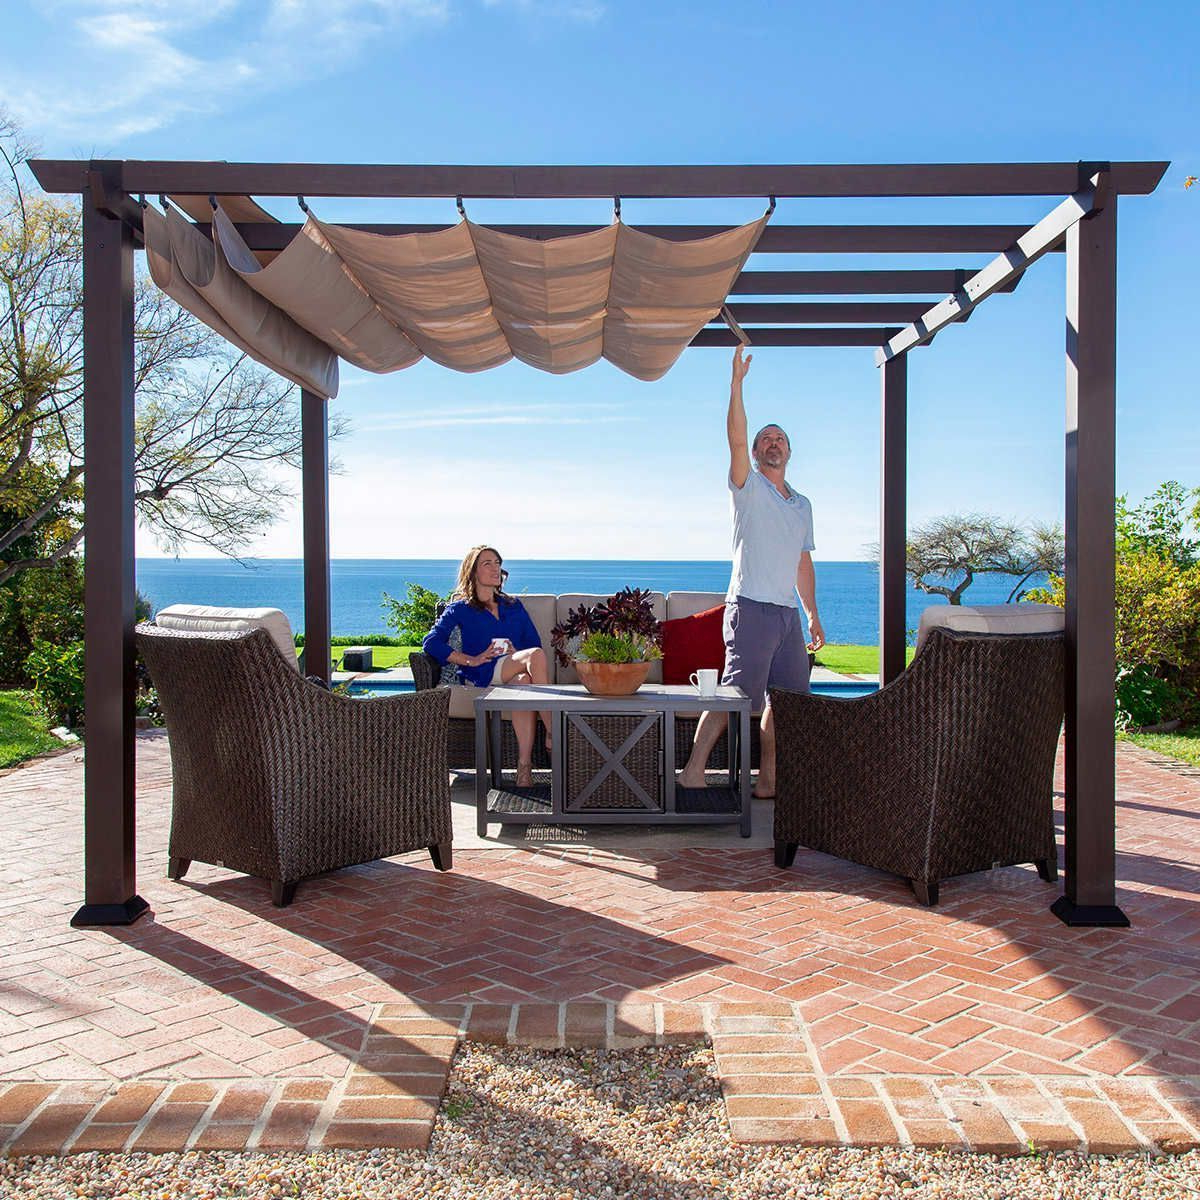 A4 Ft Cedar Pergola Swings Pertaining To Most Recently Released Pin About Pergola Curtains, Aluminum Pergola And Pergola (View 8 of 30)